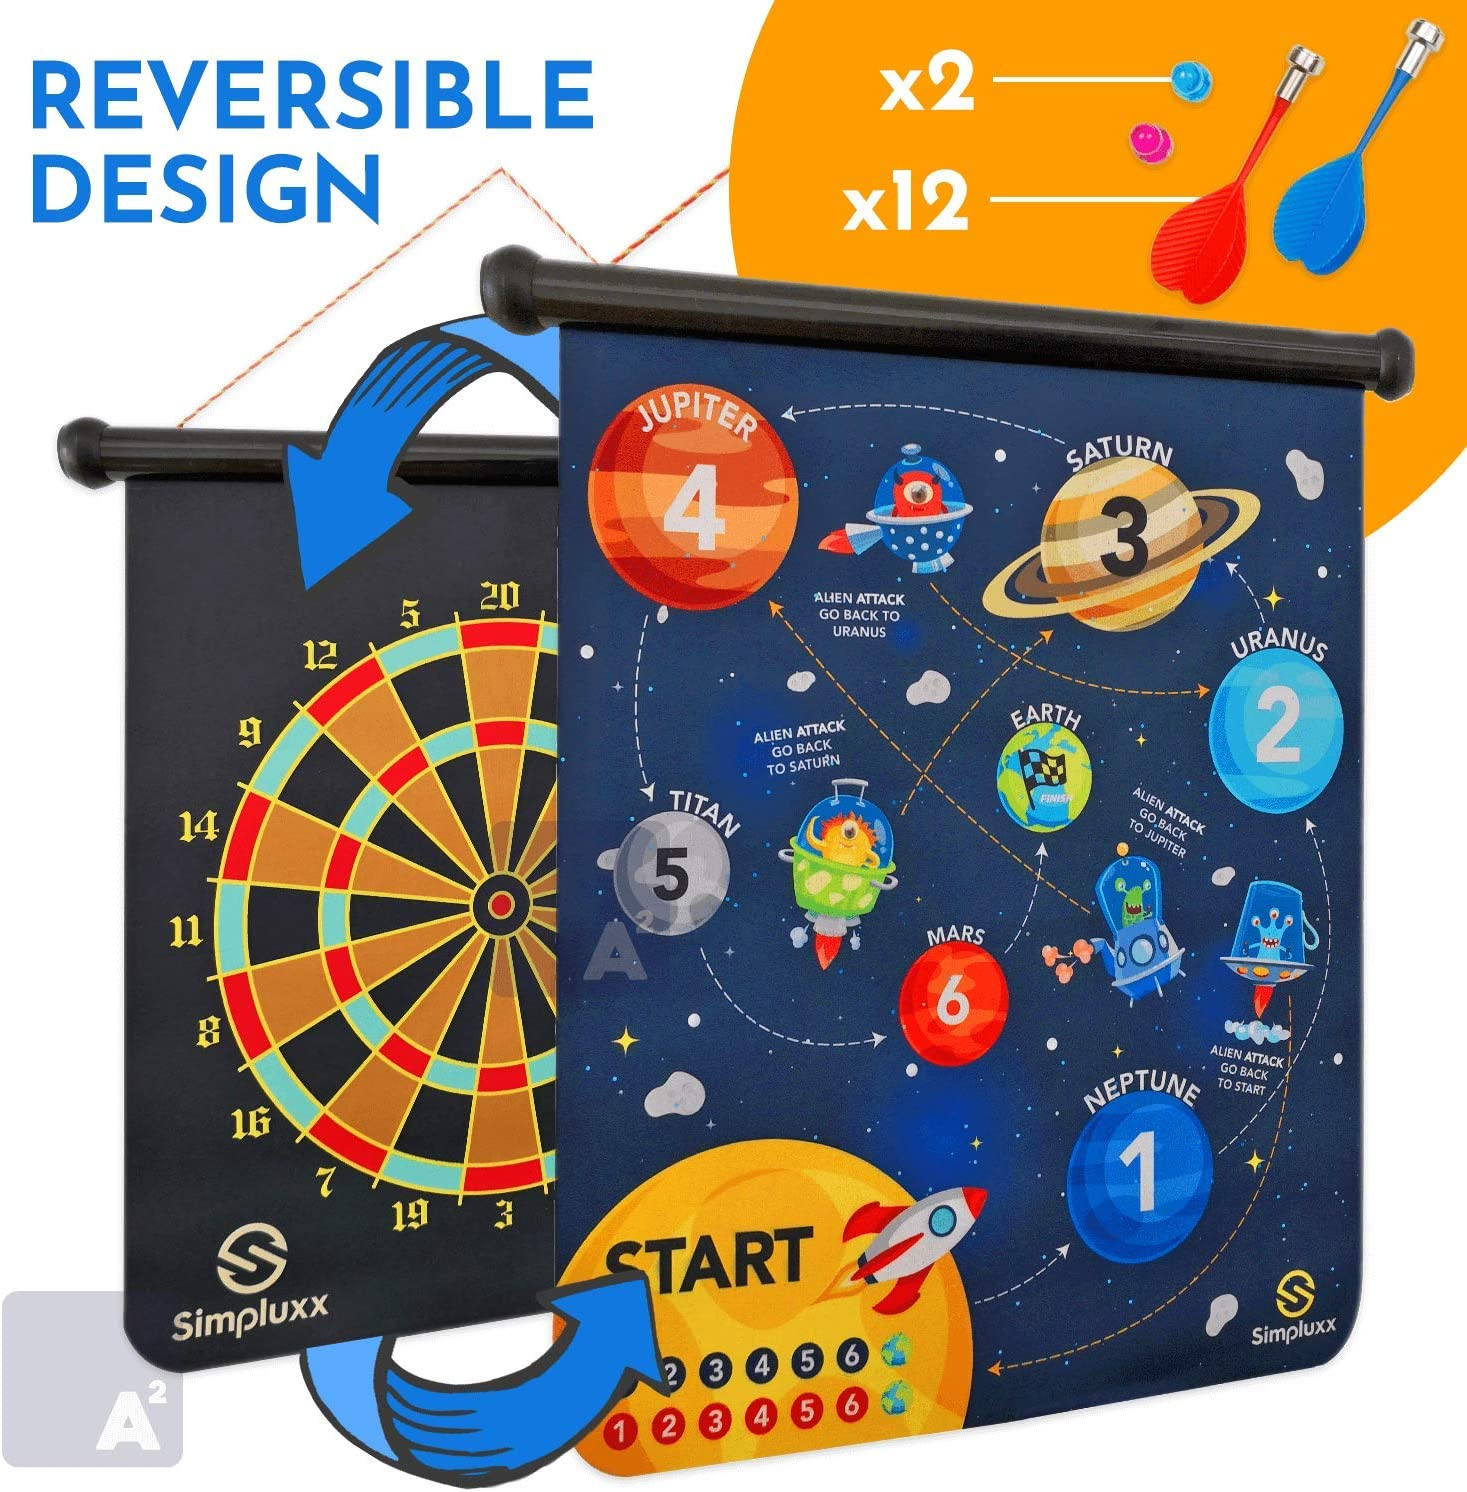 SIMPLUXX Premium Magnetic Dart Boards - Classic, Space and Monster Themed Safe and Fun Magnetic Dart Board Set for Indoor or Outdoors